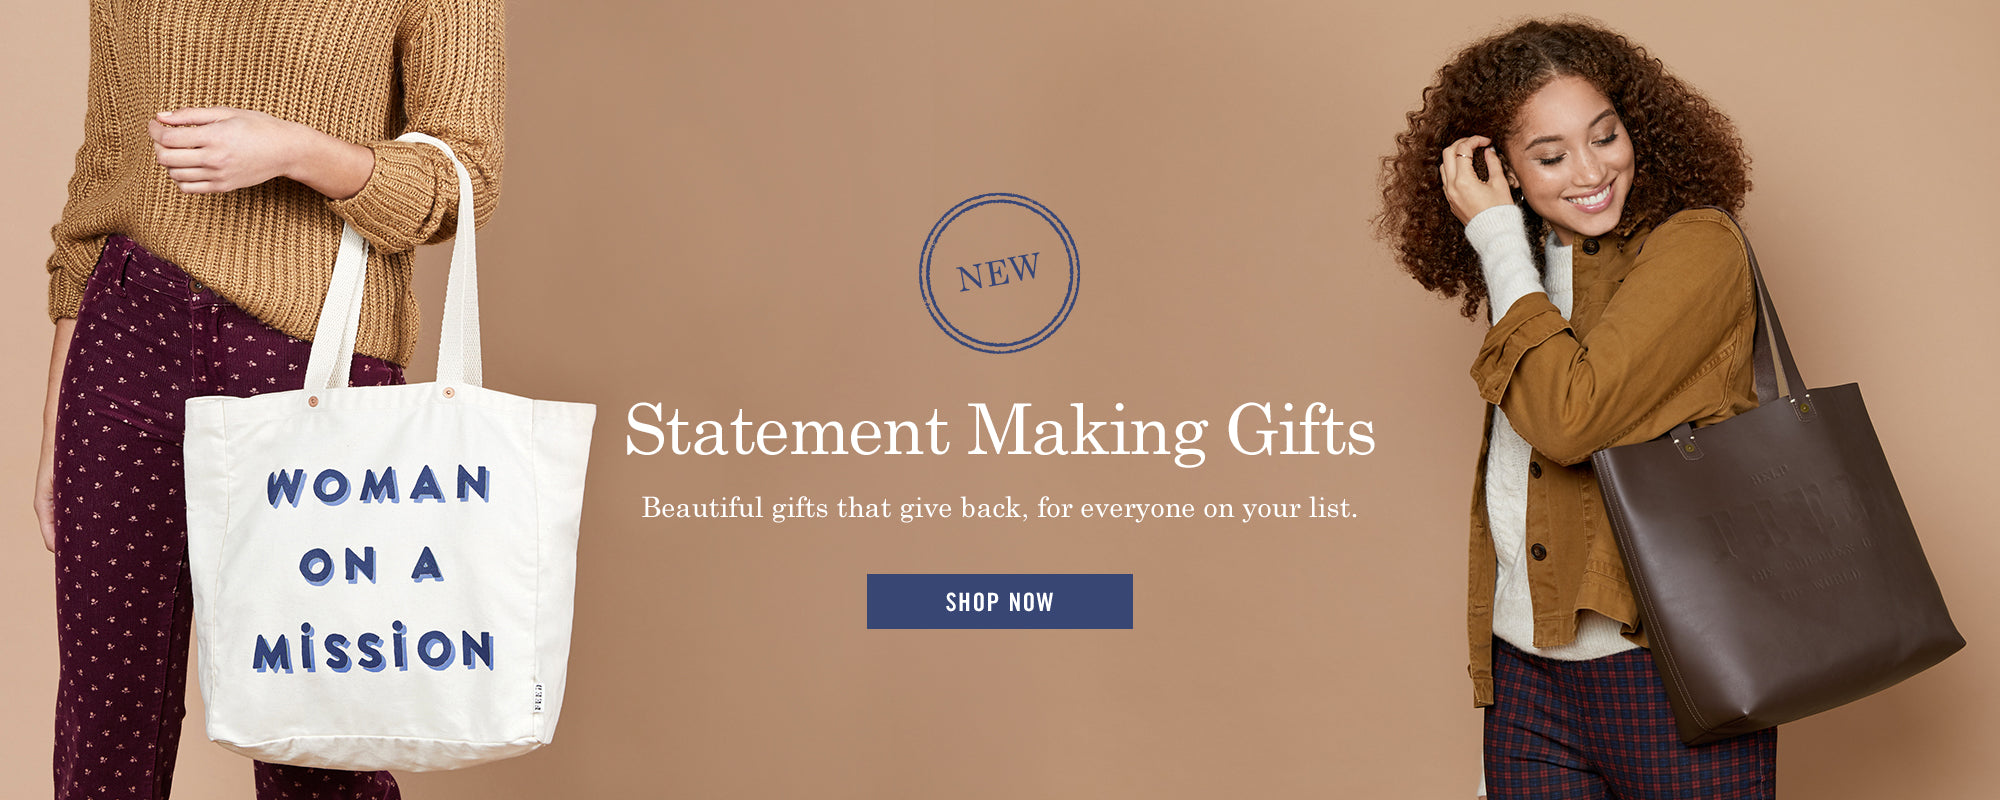 Statement Making Gifts - Shop Now